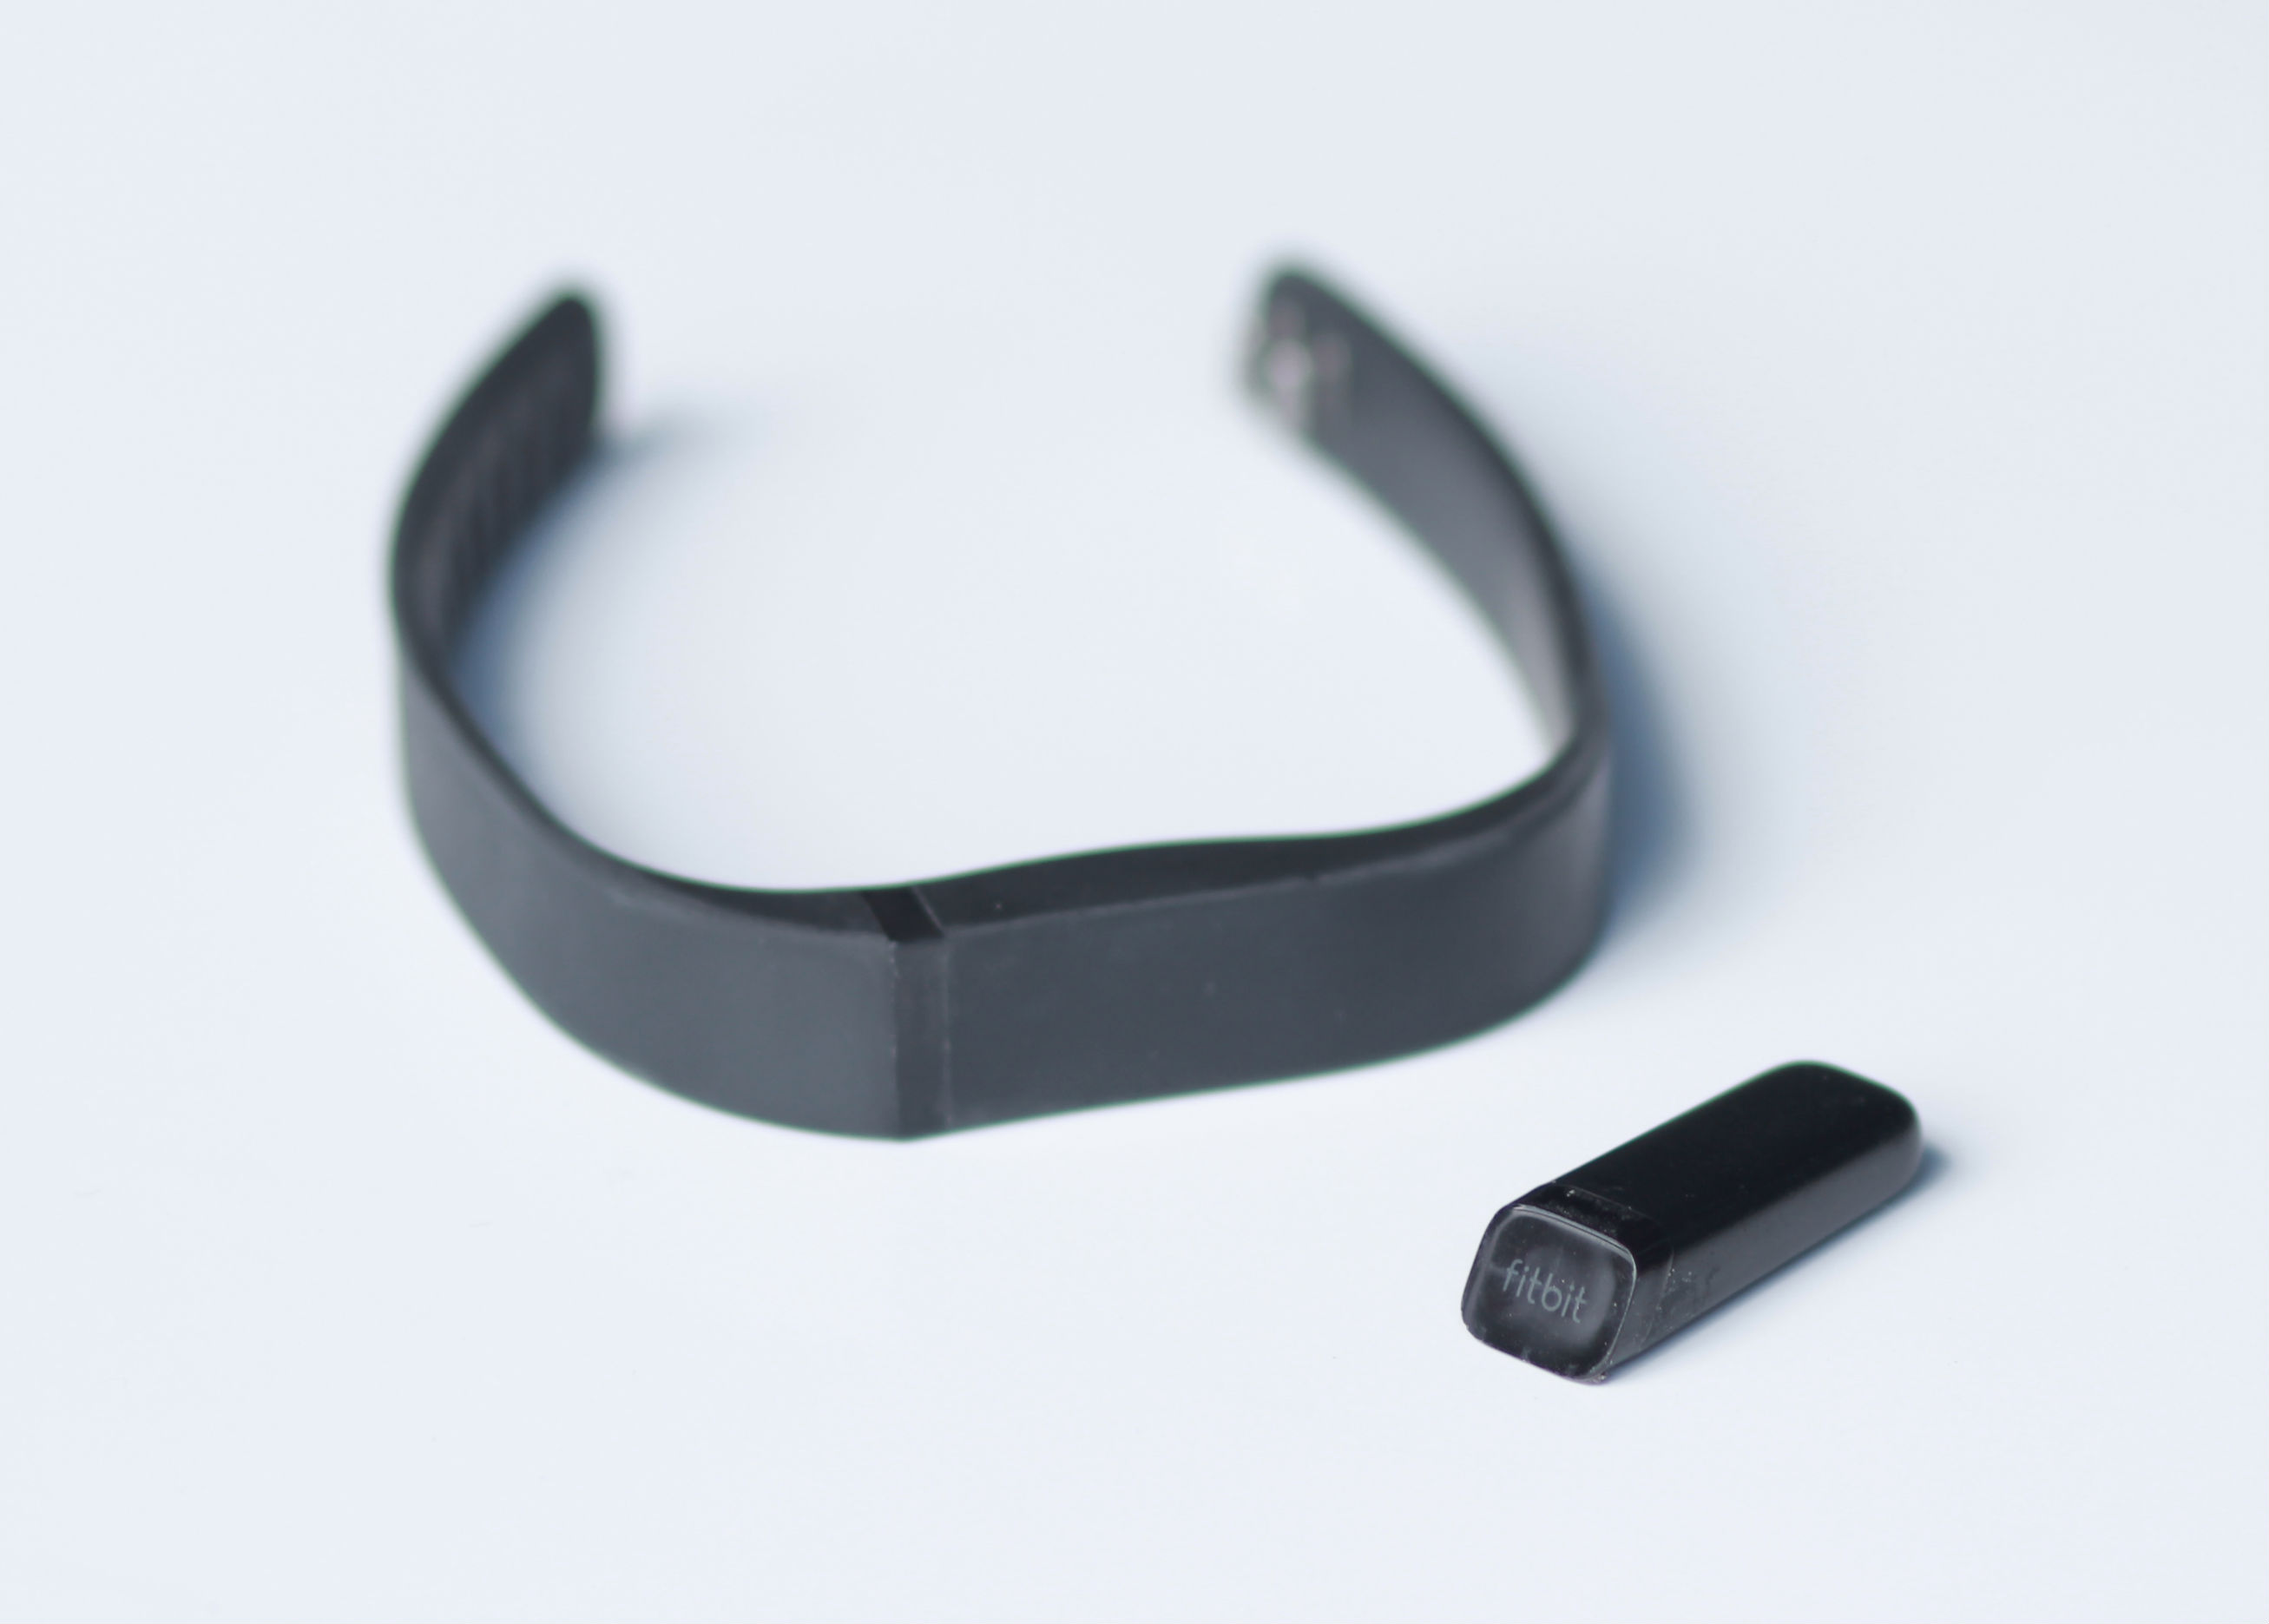 The Fitbit Flex. Photo via Wikimedia Commons.